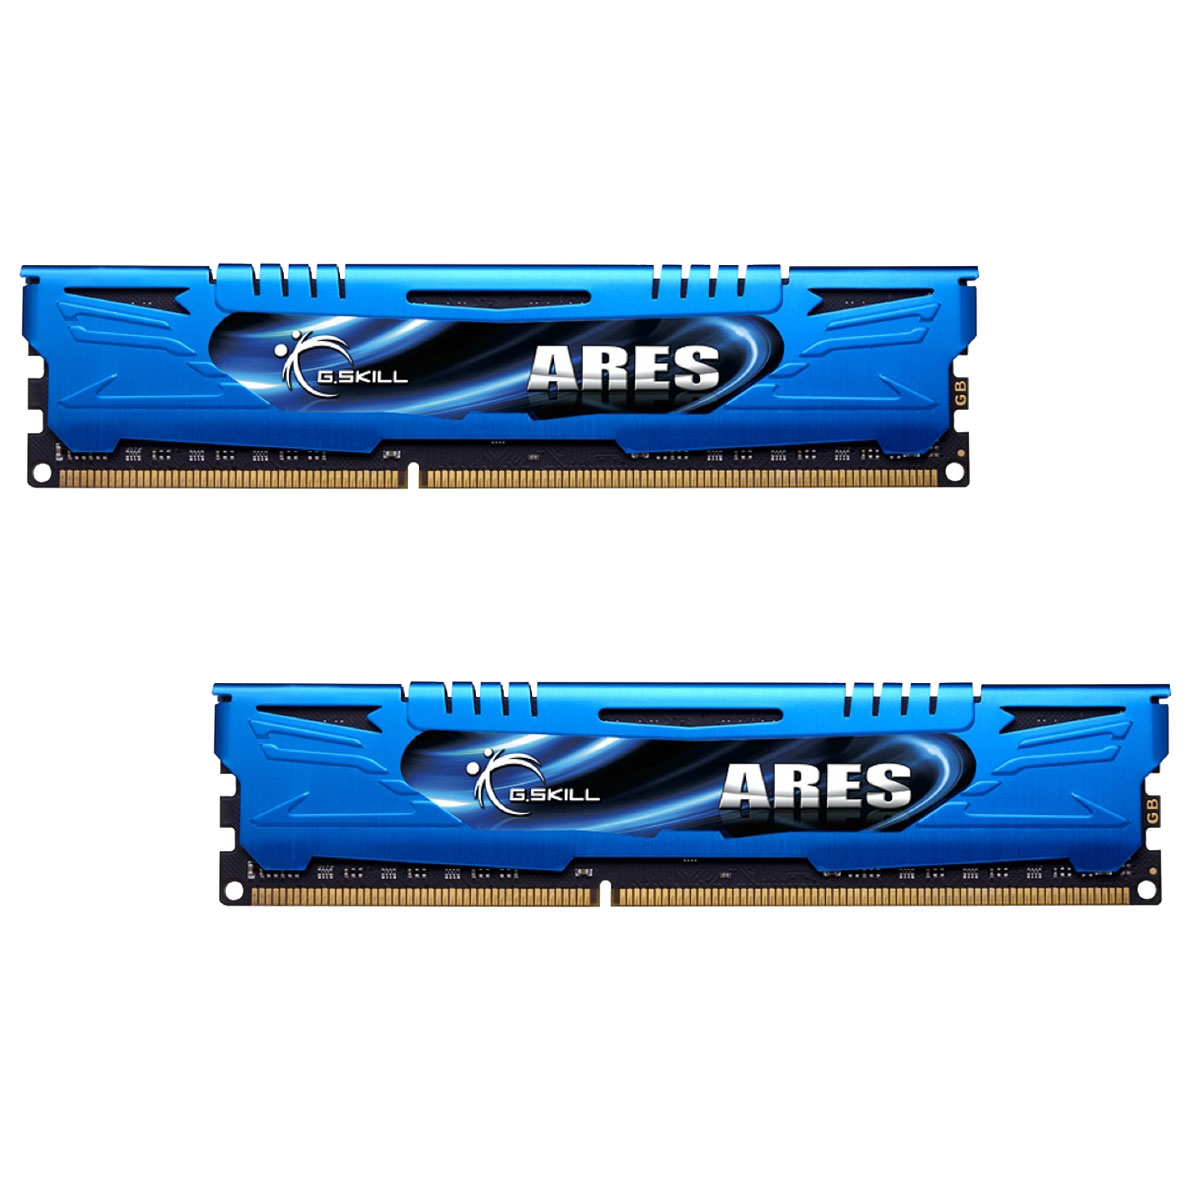 Mémoire PC G.Skill Ares Blue Series 8 Go (2 x 4 Go) DDR3 1866 MHz CL9 Kit Dual Channel DDR3 PC3-14900 - F3-1866C9D-8GAB (garantie à vie par G.Skill)